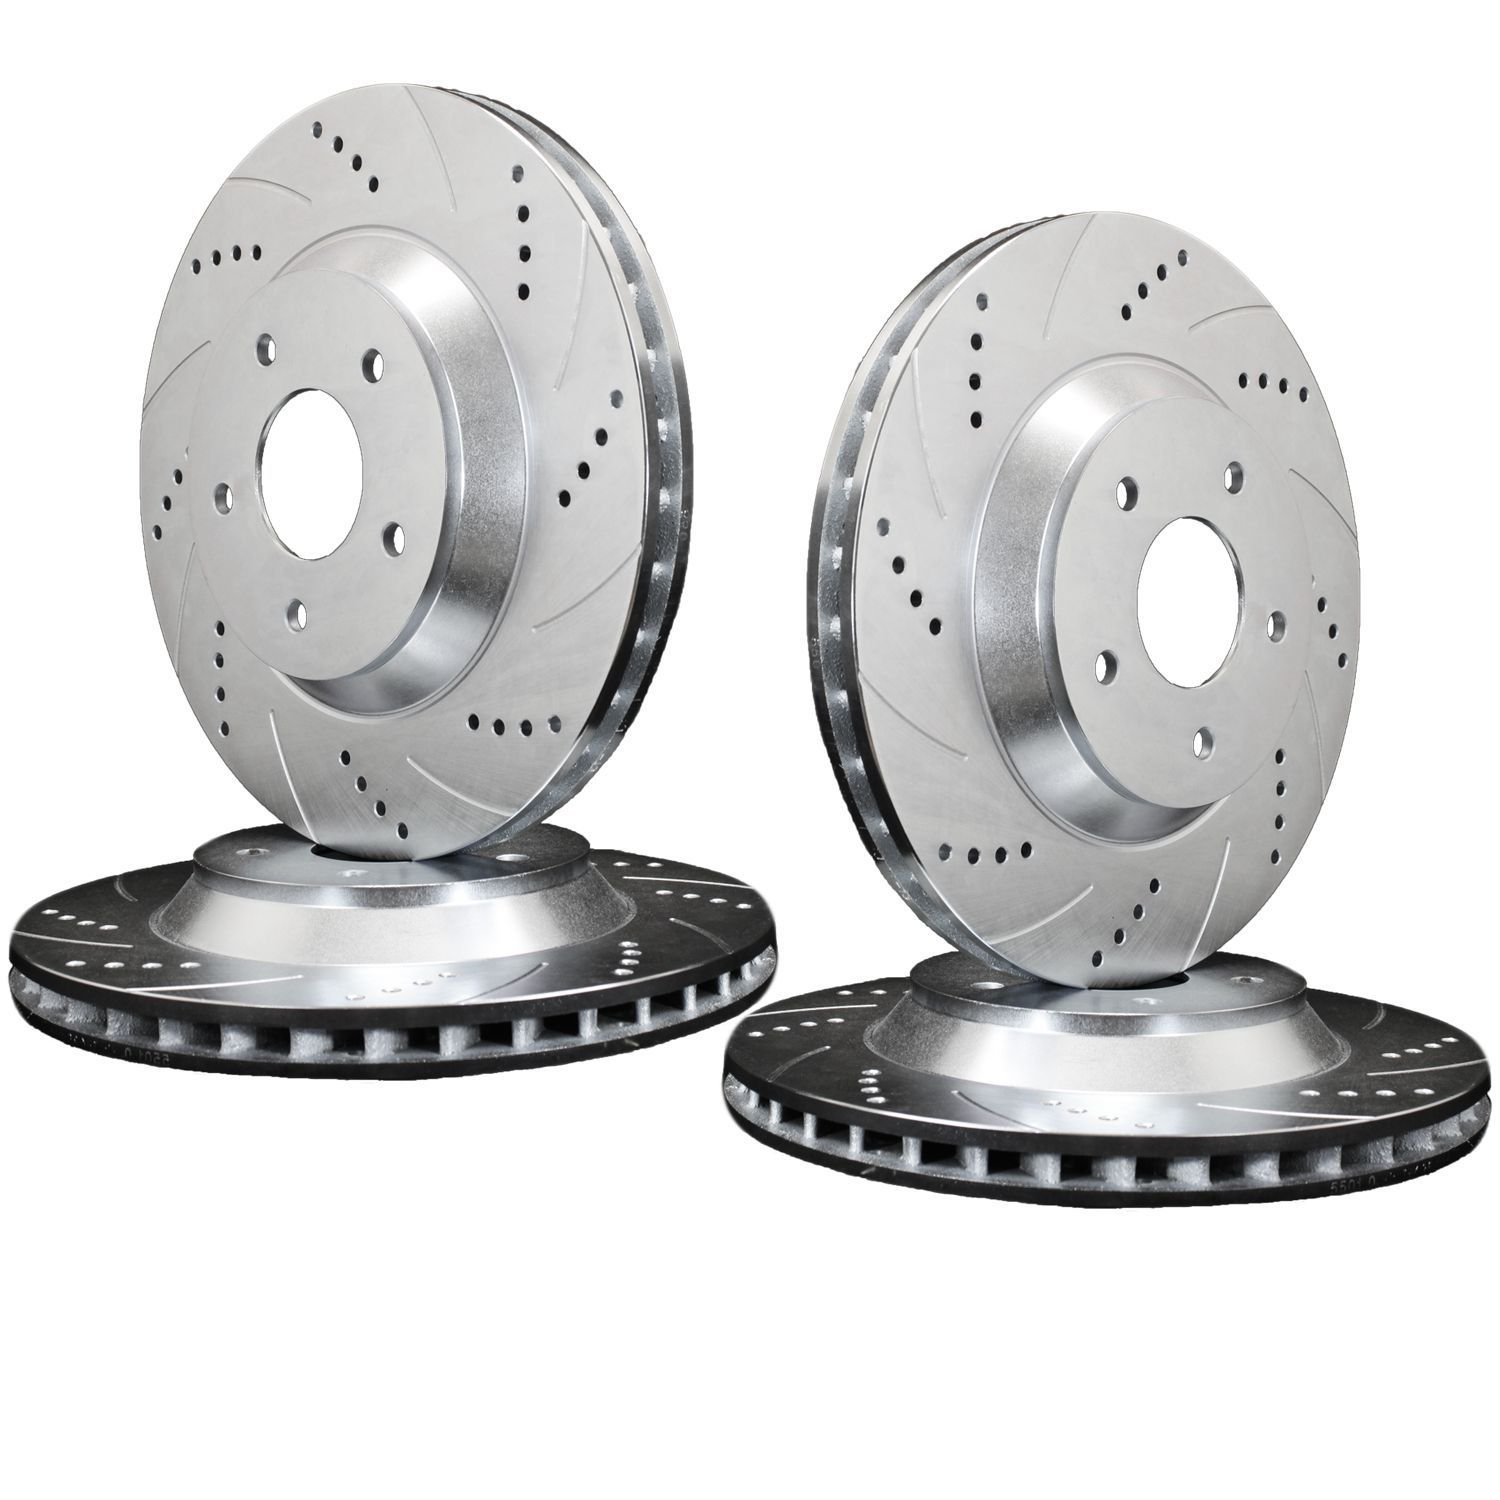 Need Brakes? Try Our Drilled And Slotted Rotors. They Help